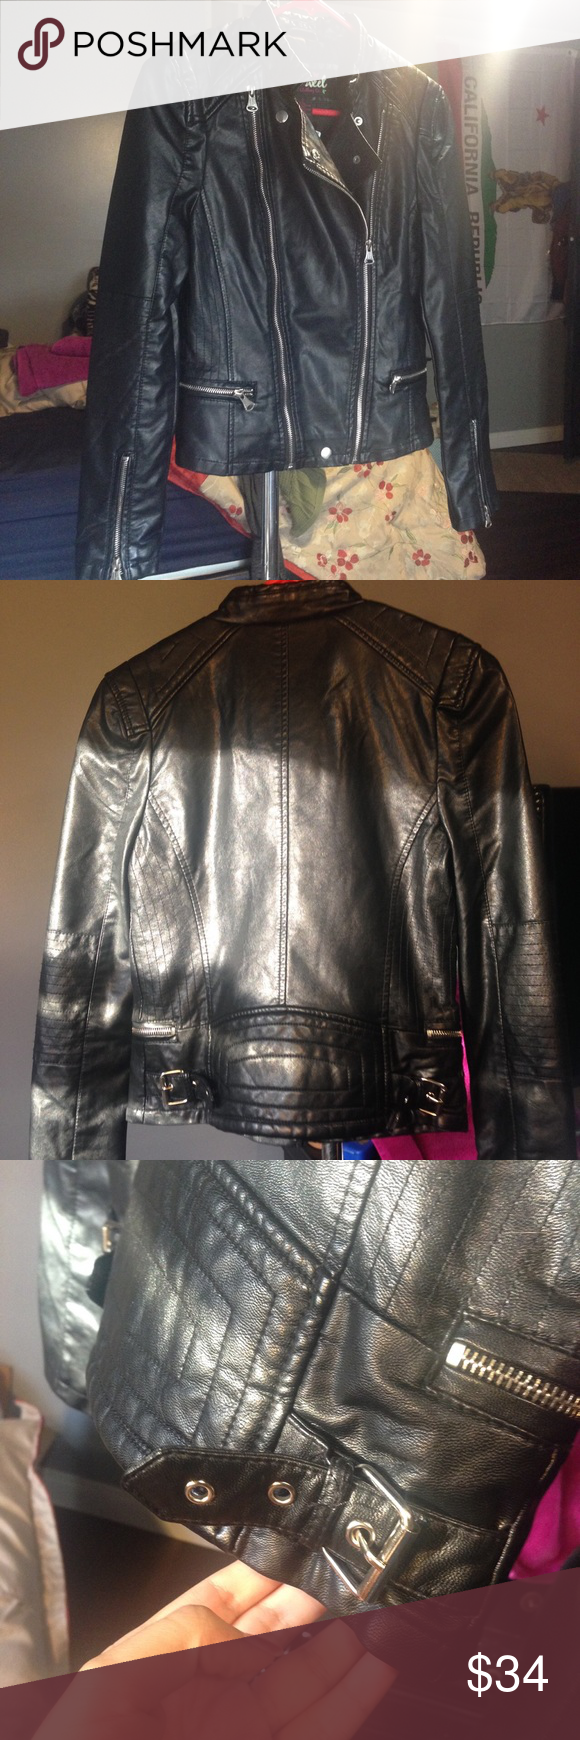 Black faux leather jacket Faux leather. NEW with tags. Size small. Jackets & Coats Utility Jackets